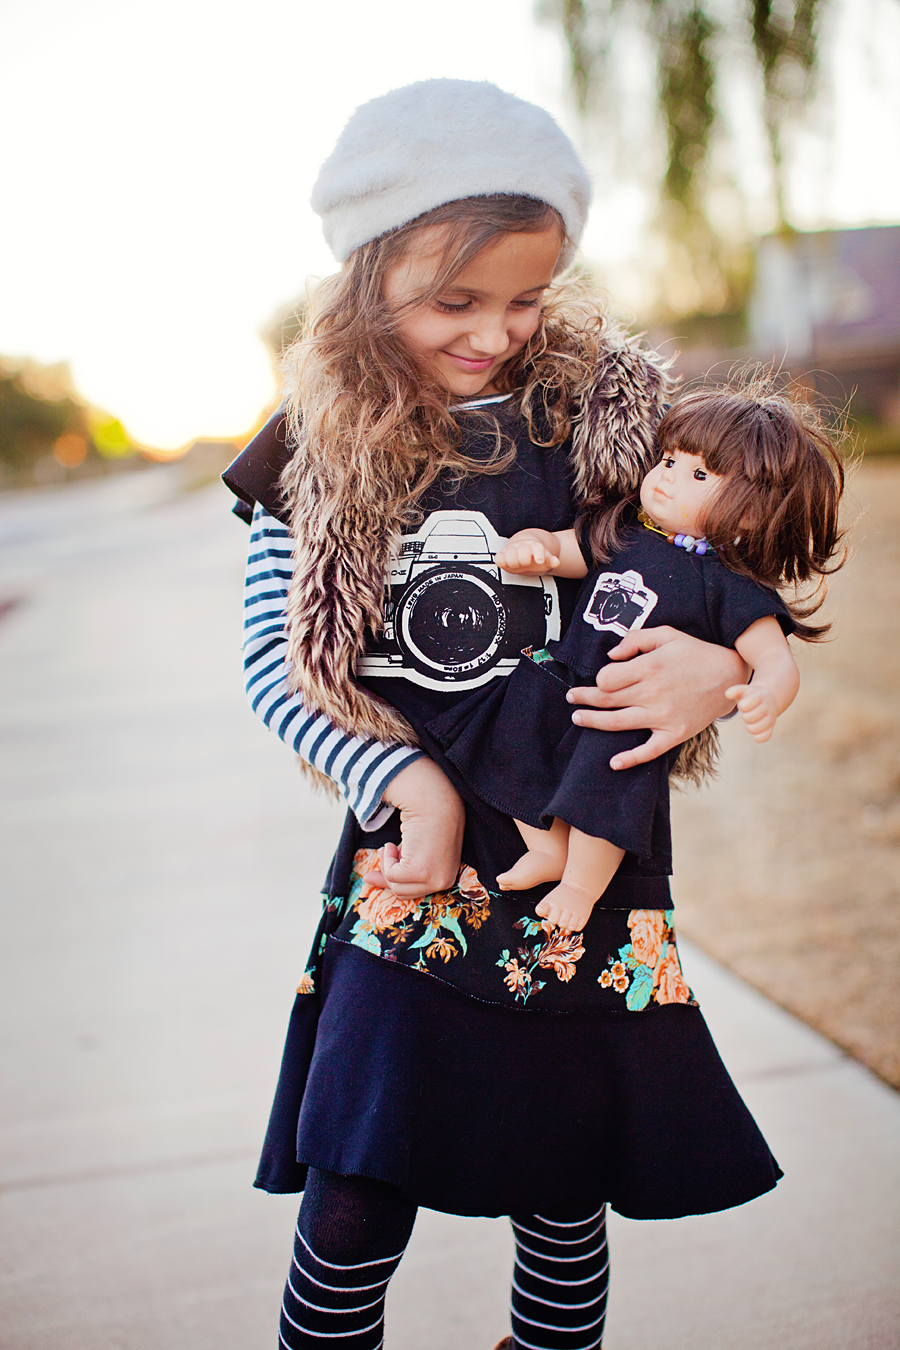 Matching girl and doll clothing. Photography by Laura Winslow Photography via lilblueboo.com